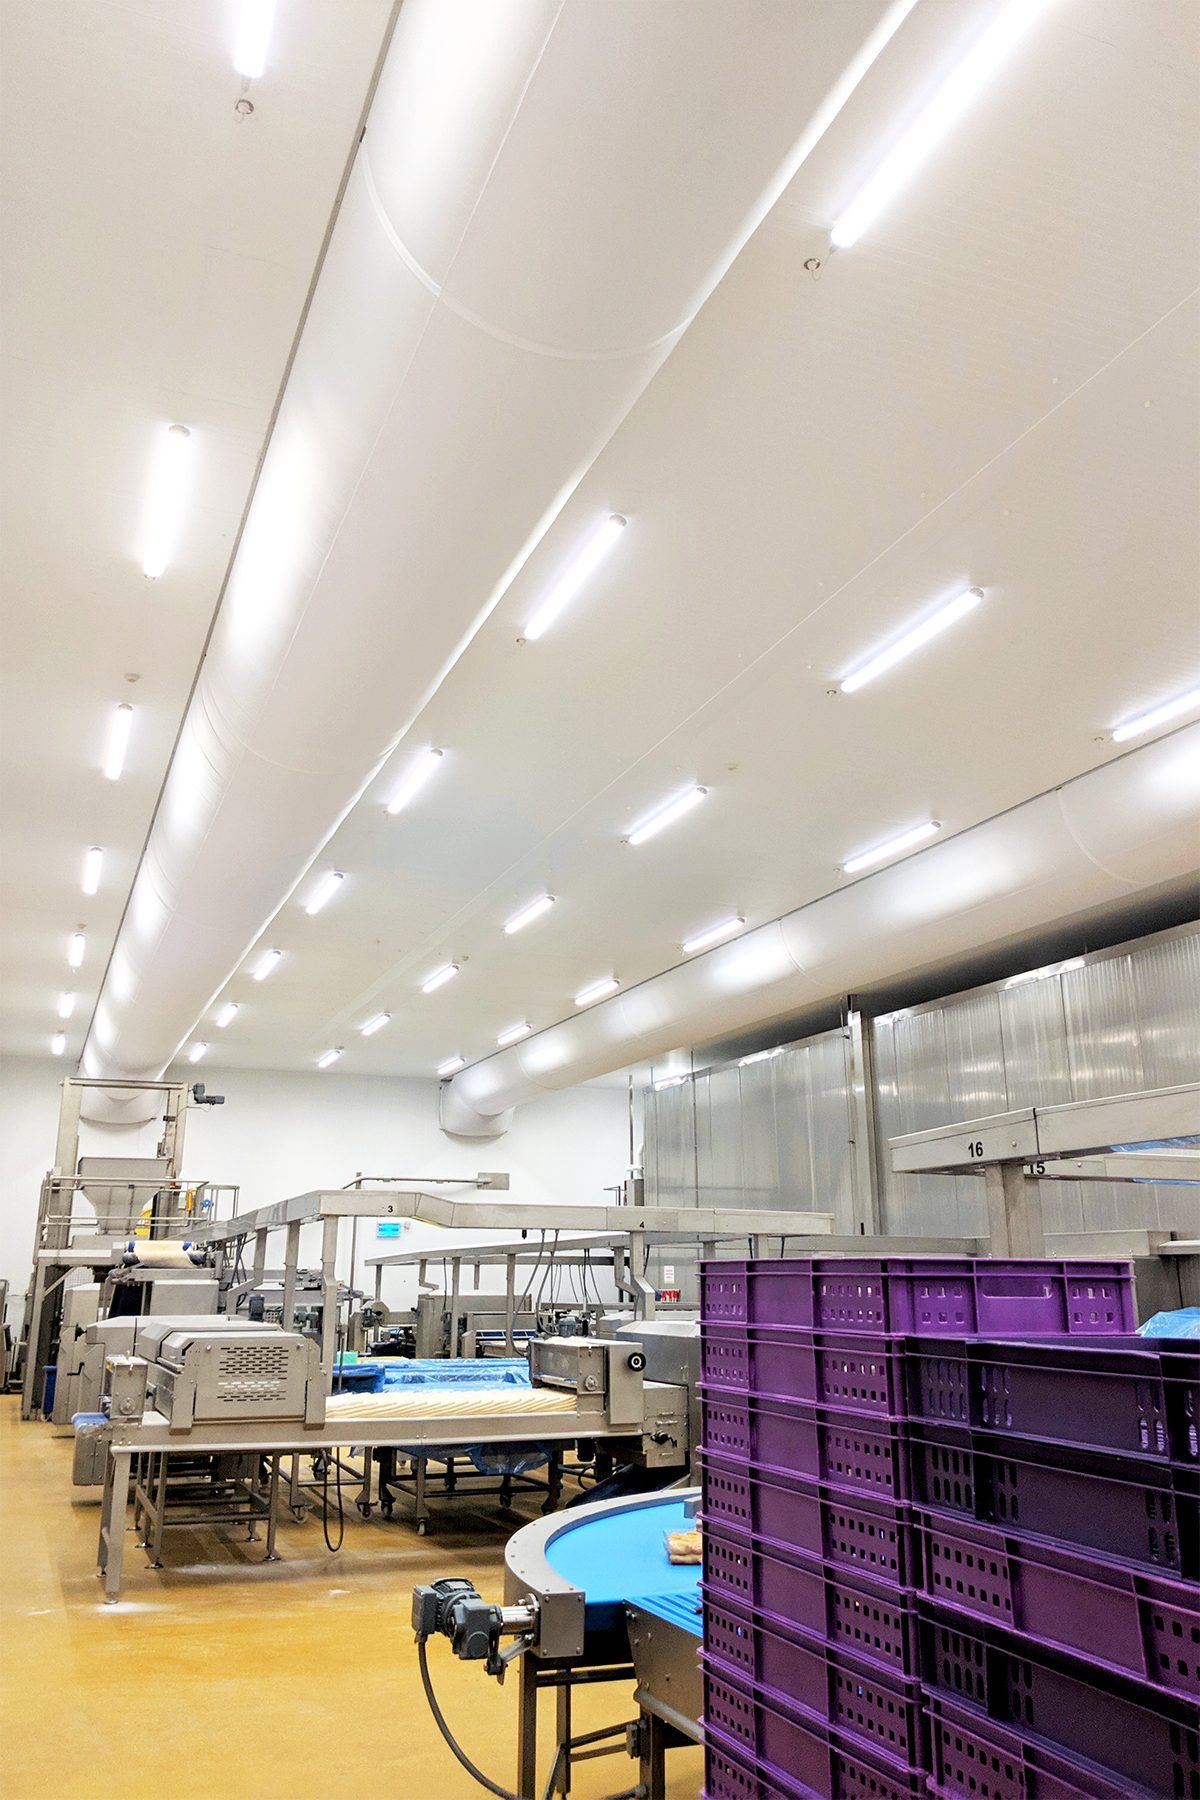 White fabric diffusers in a food production facility